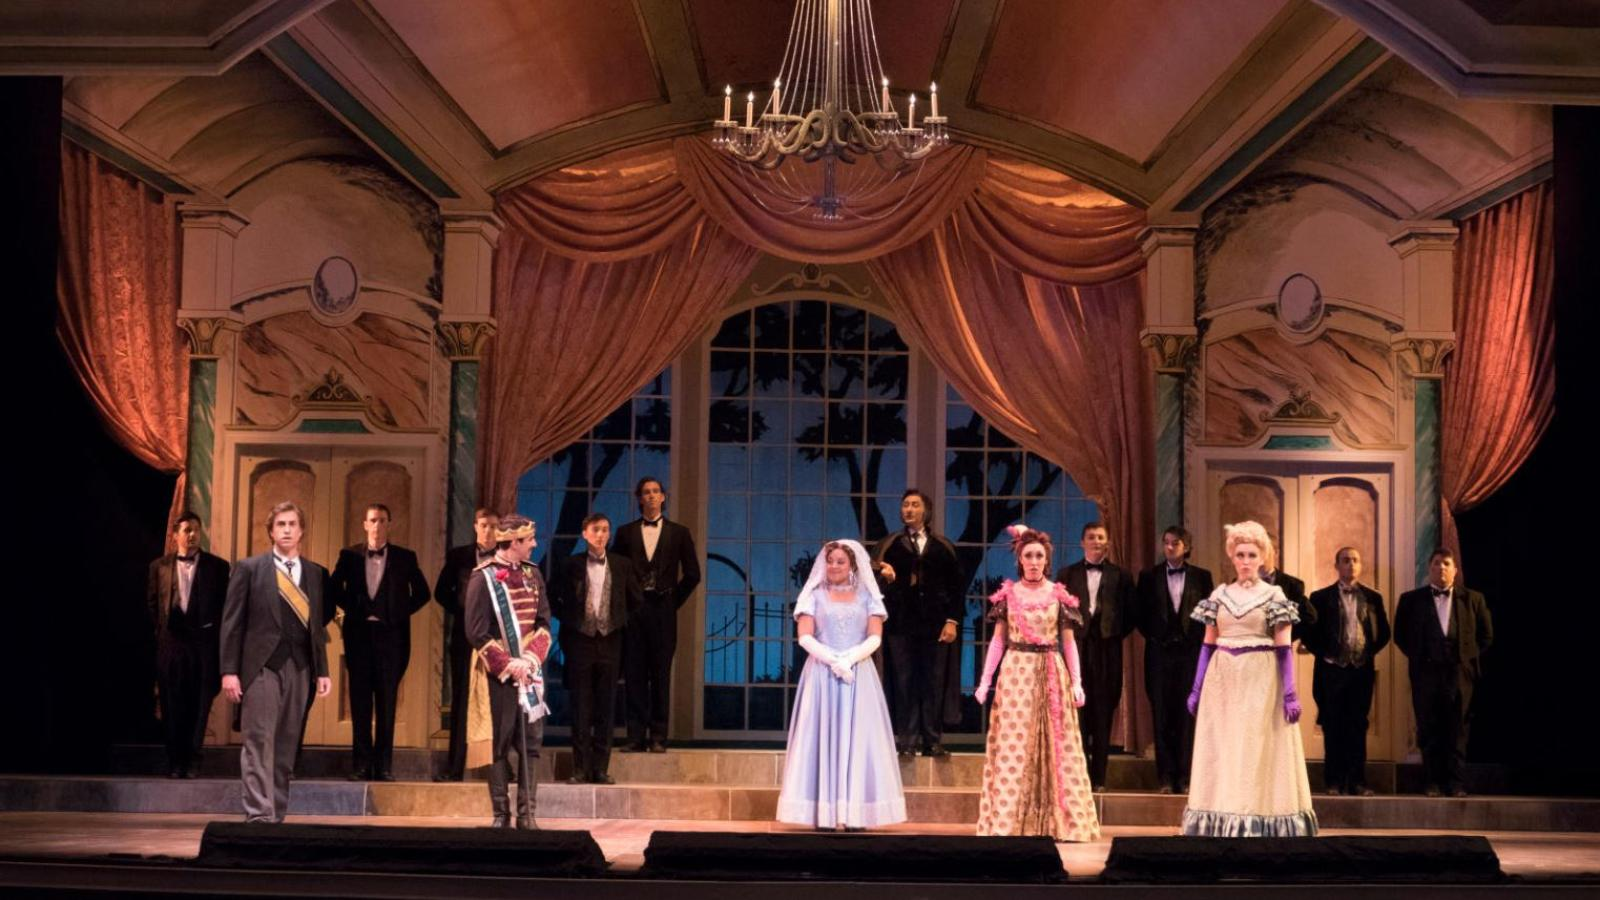 A performance of Cinderella